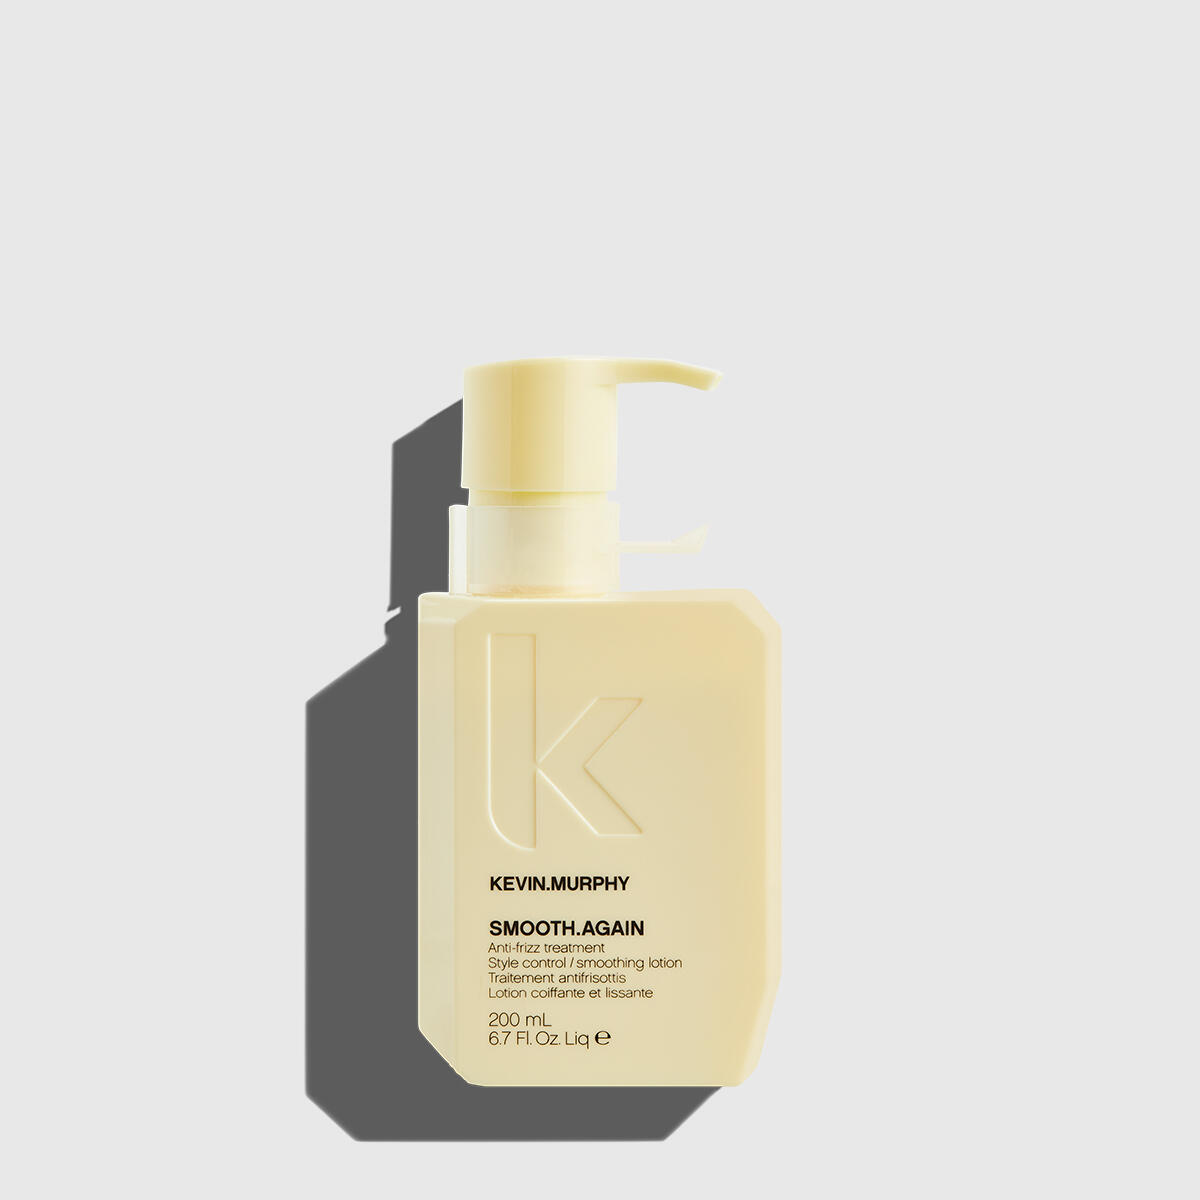 Kevin Murphy Smooth Again null